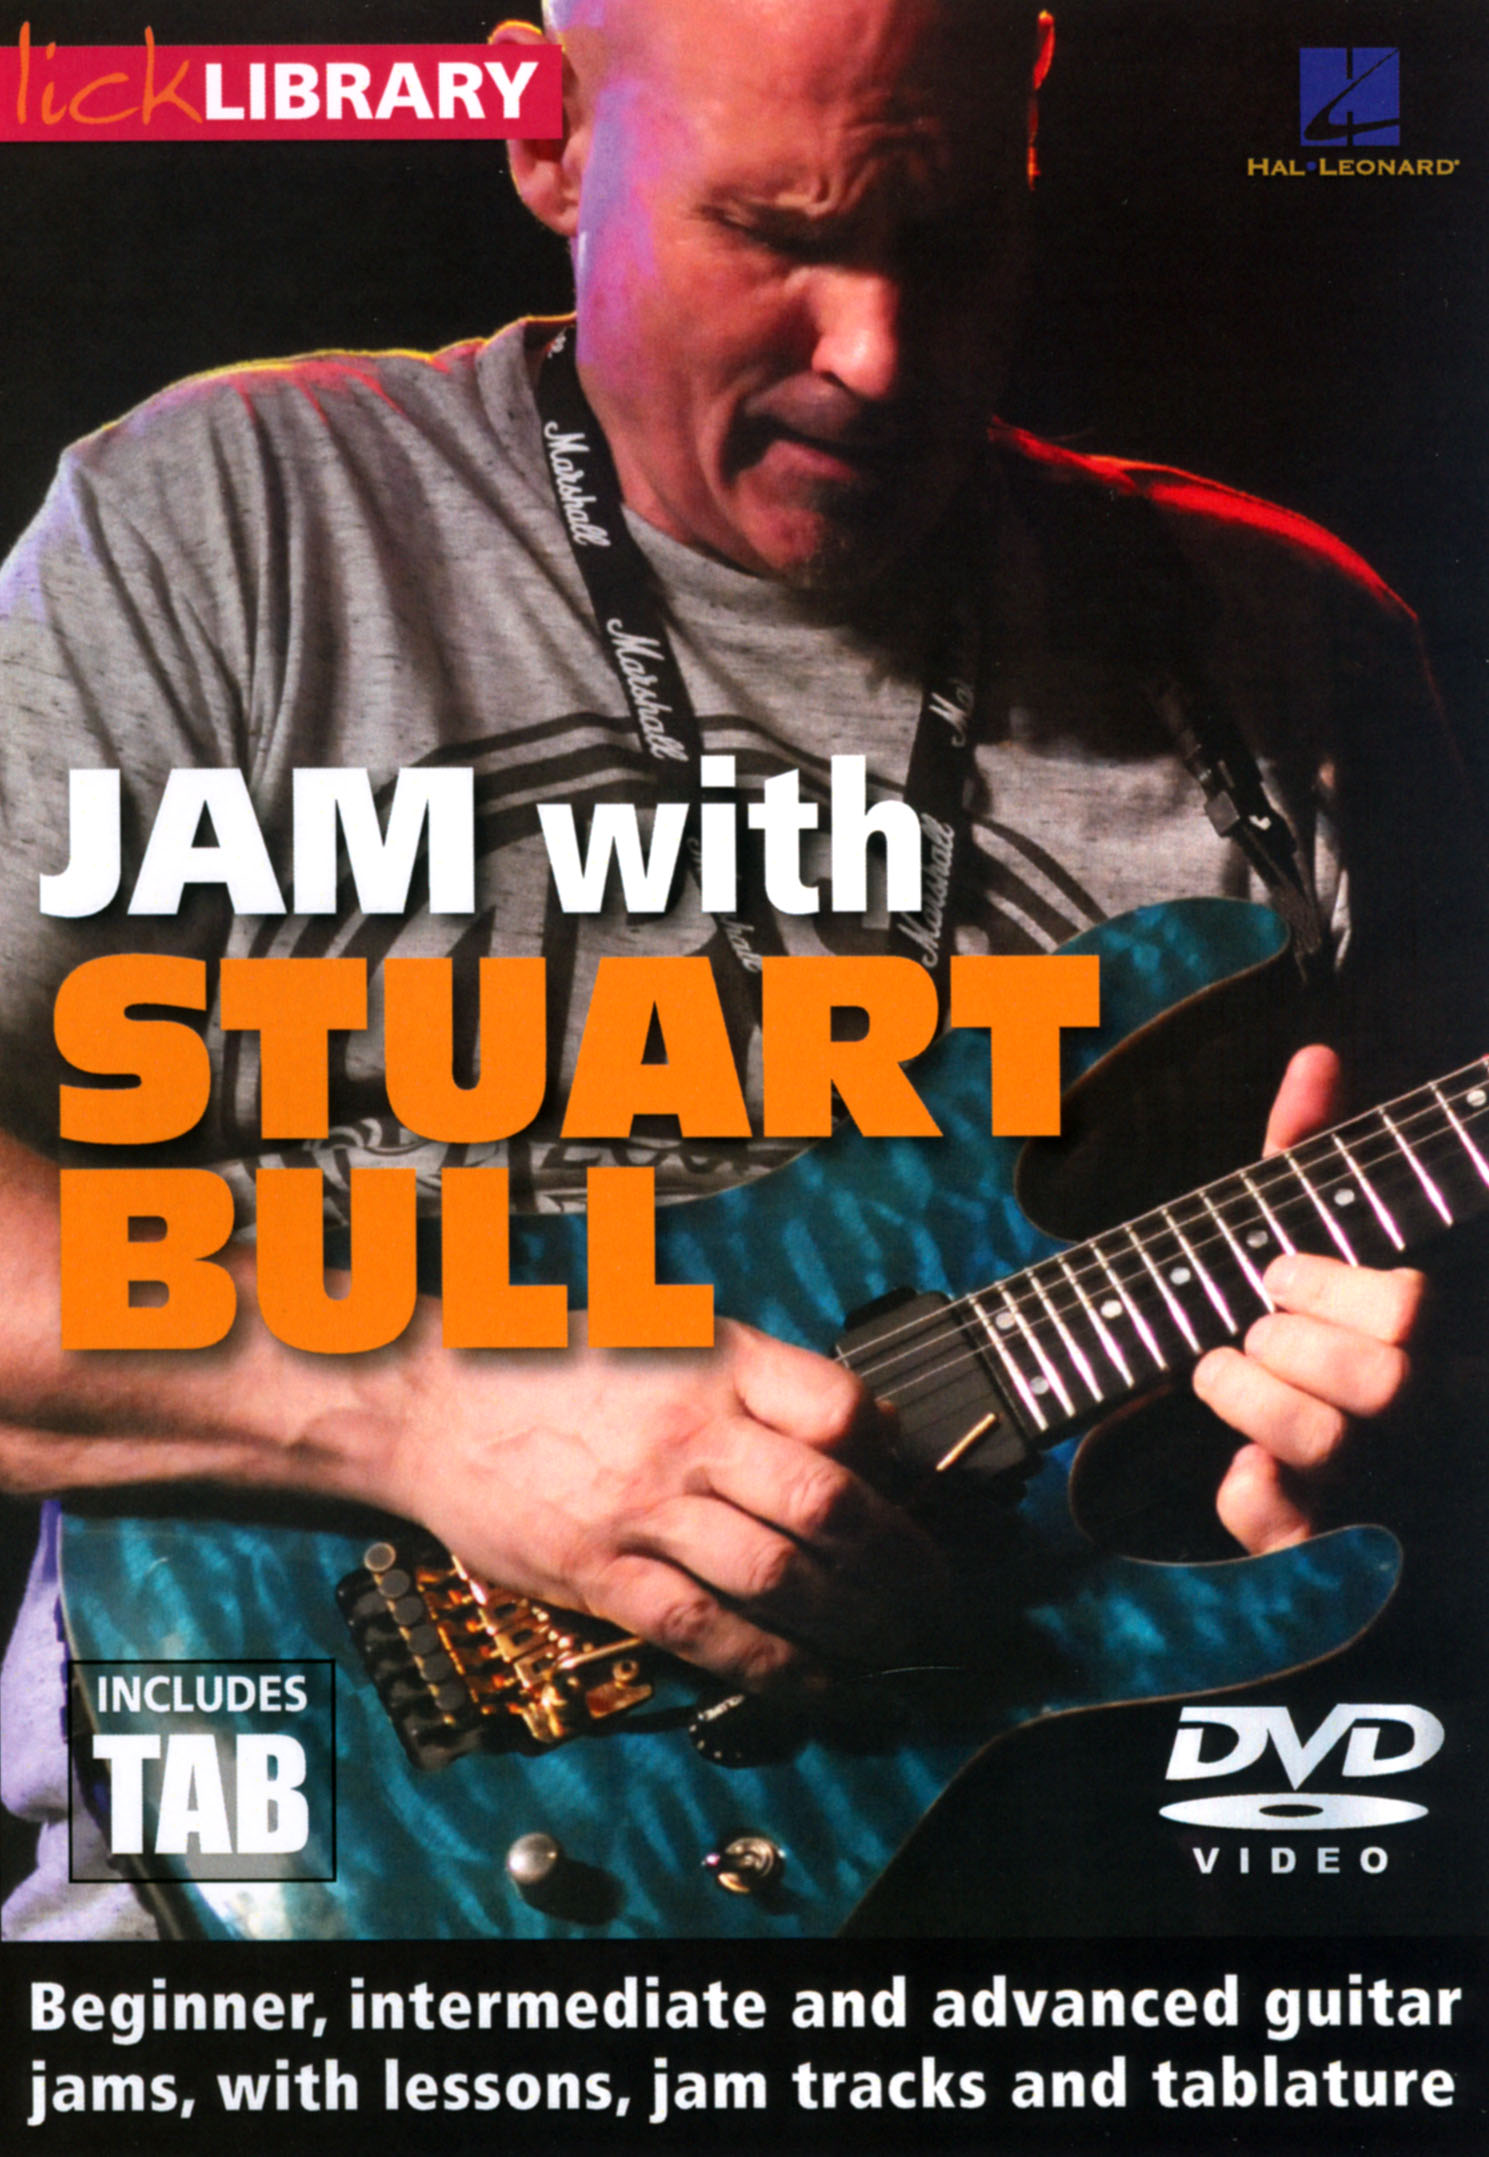 Lick Library: Jam with Stuart Bull